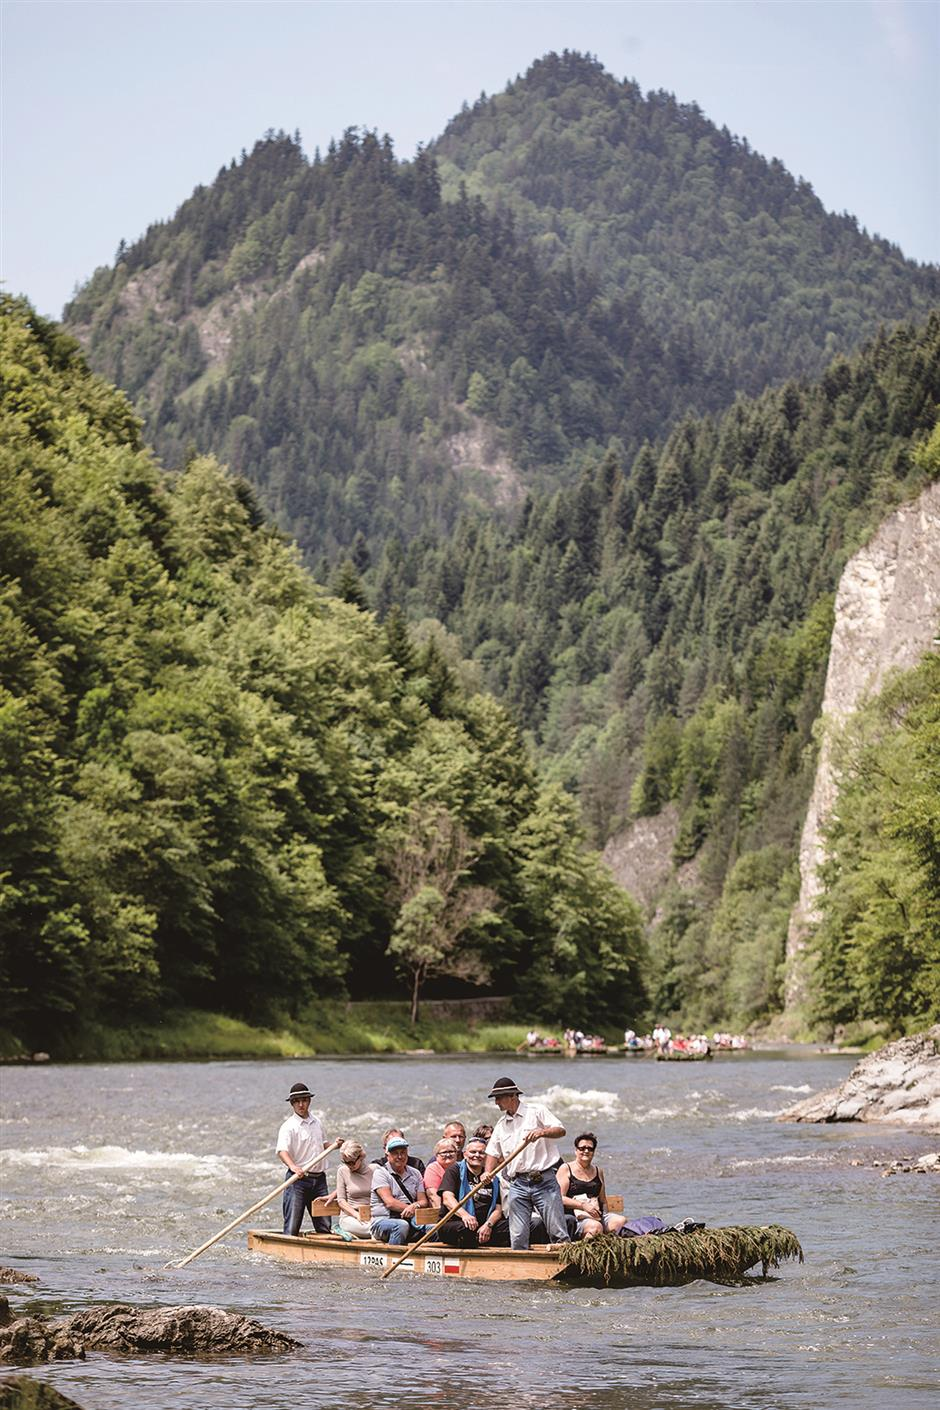 Poland's rafting culture is a family tradition